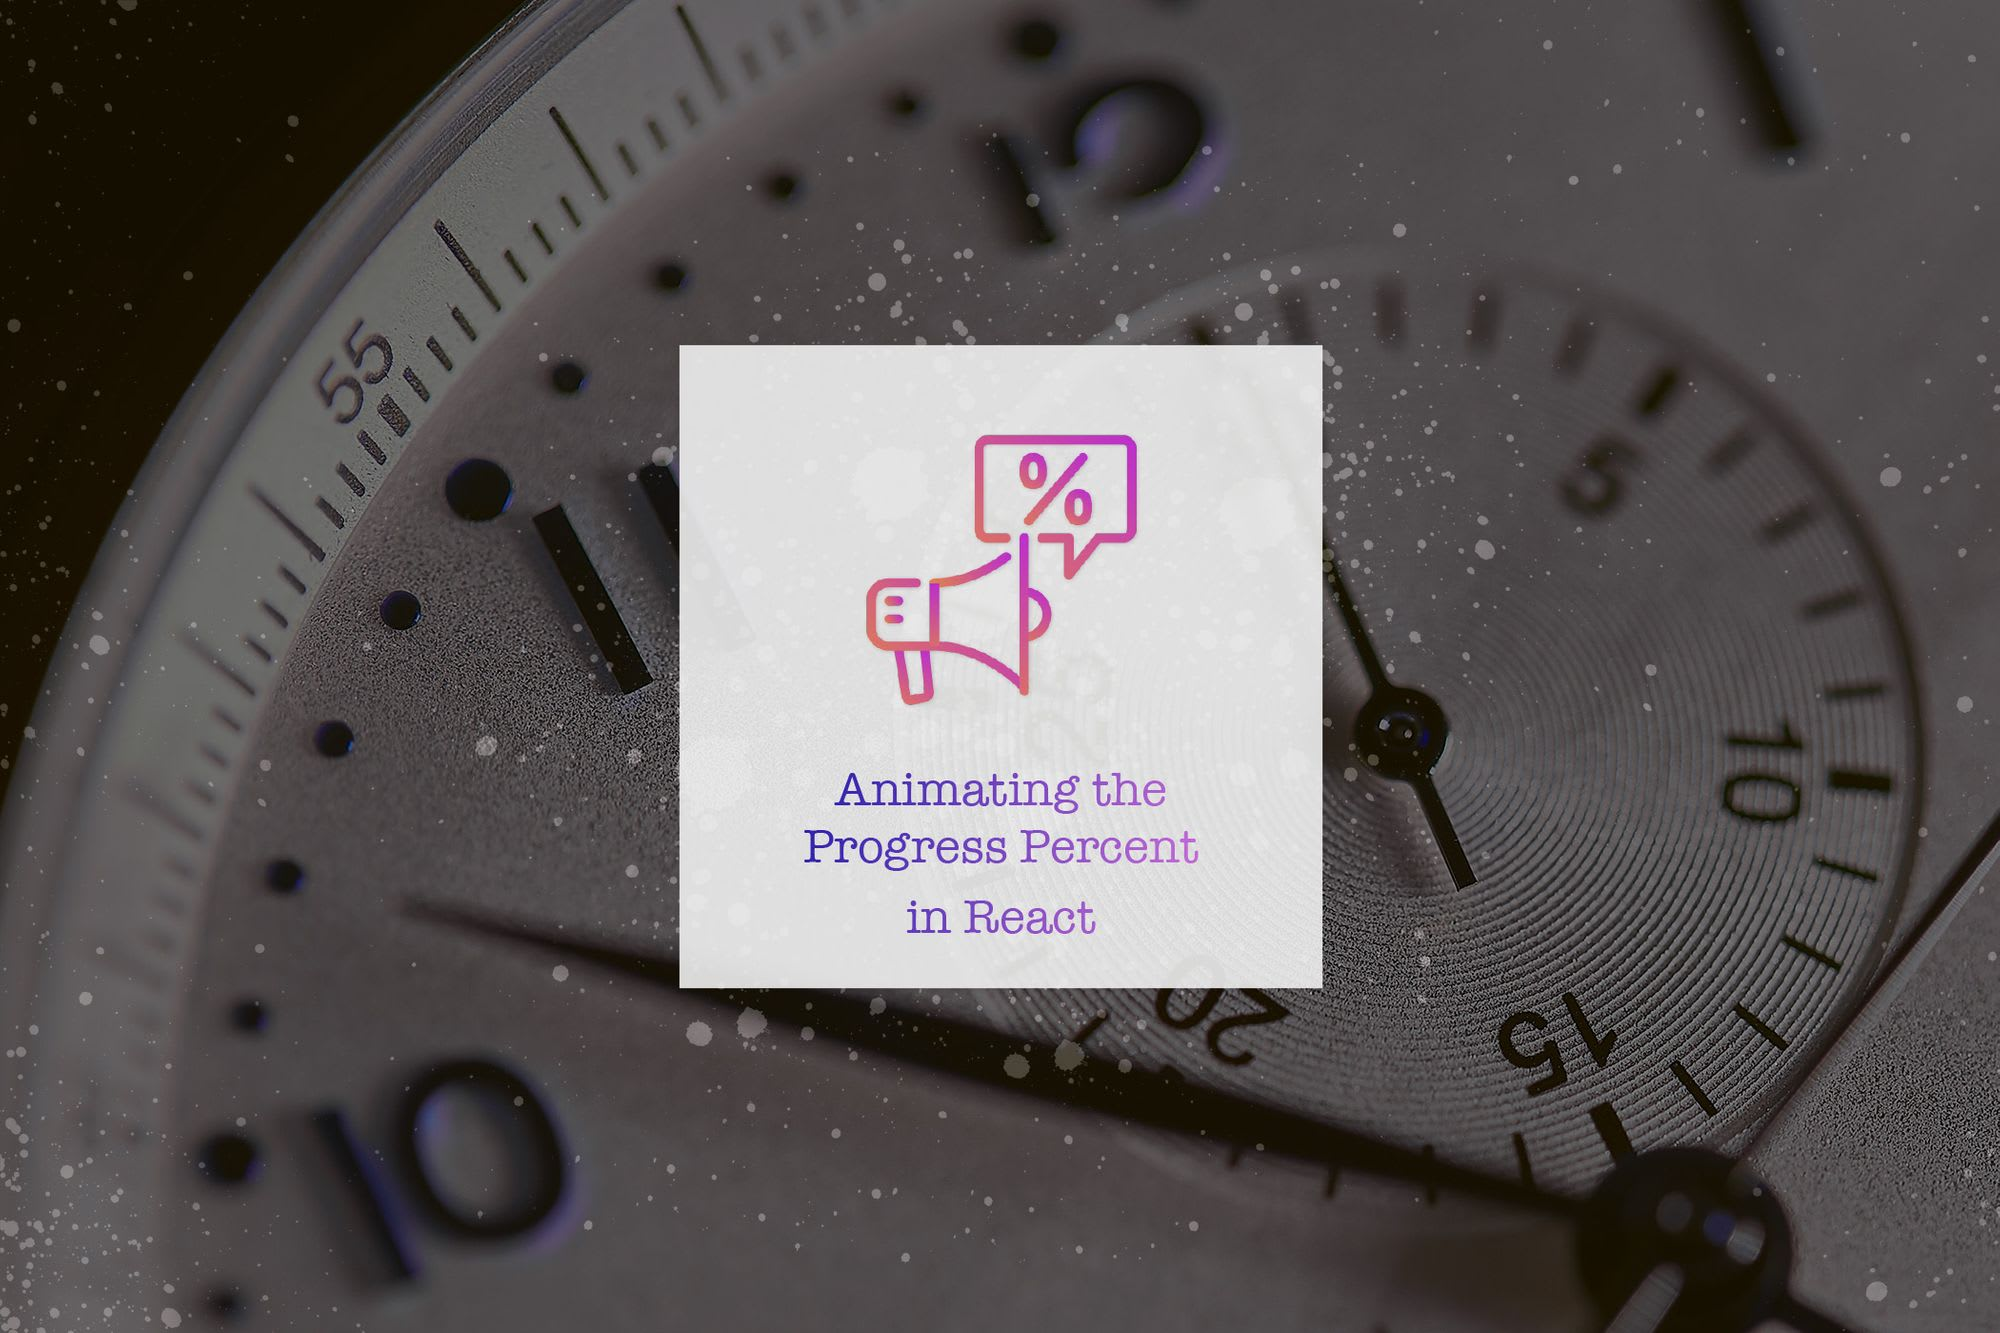 Animating the Progress Percent Change in React